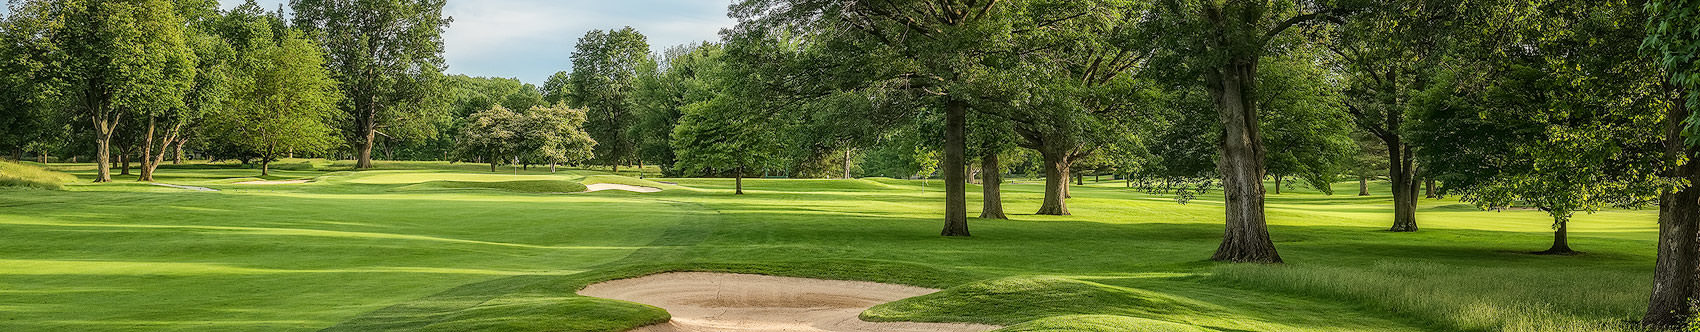 <div class='title'>           HIGHLAND GOLF & COUNTRY CLUB'S 17TH         </div>                 <div class='description'>           A gentle afternoon shot of the 17th hole at Indianapolis, Indiana's Highland Golf and Country Club.         </div>